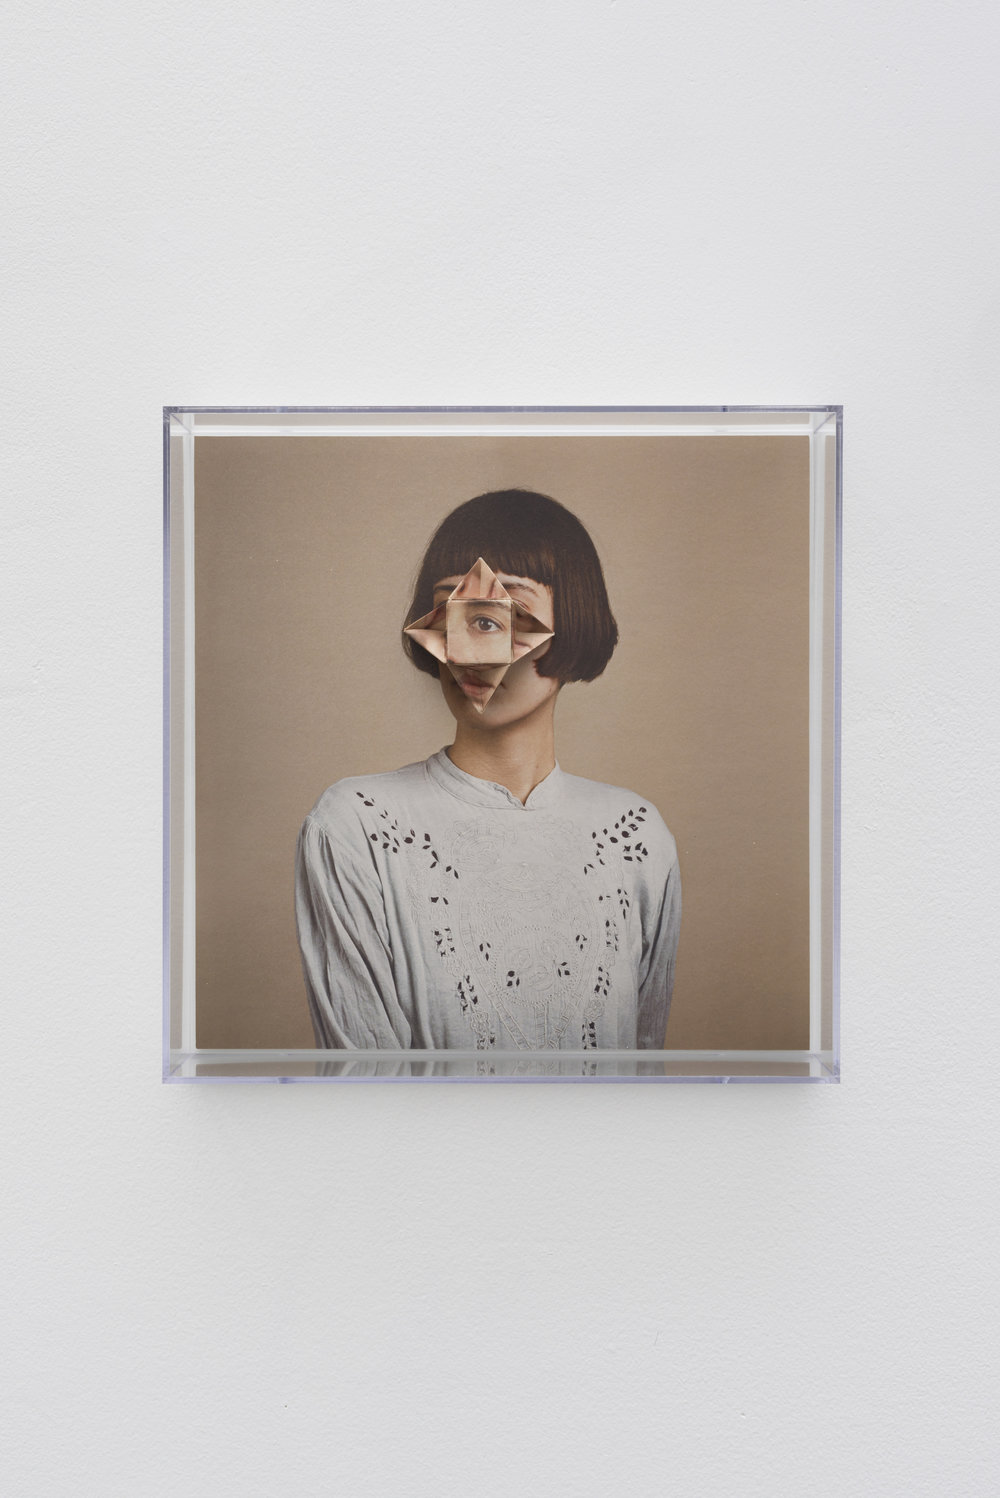 Alma Haser,  Patient No. 34 HD (Jazmine) , 2017  Digital pigment print with folded digital pigment print sculpture, plexiglass box, 30 x 30 x 10 cm (approx. 12 x 12 x 4 in), edition of 5   Inquire